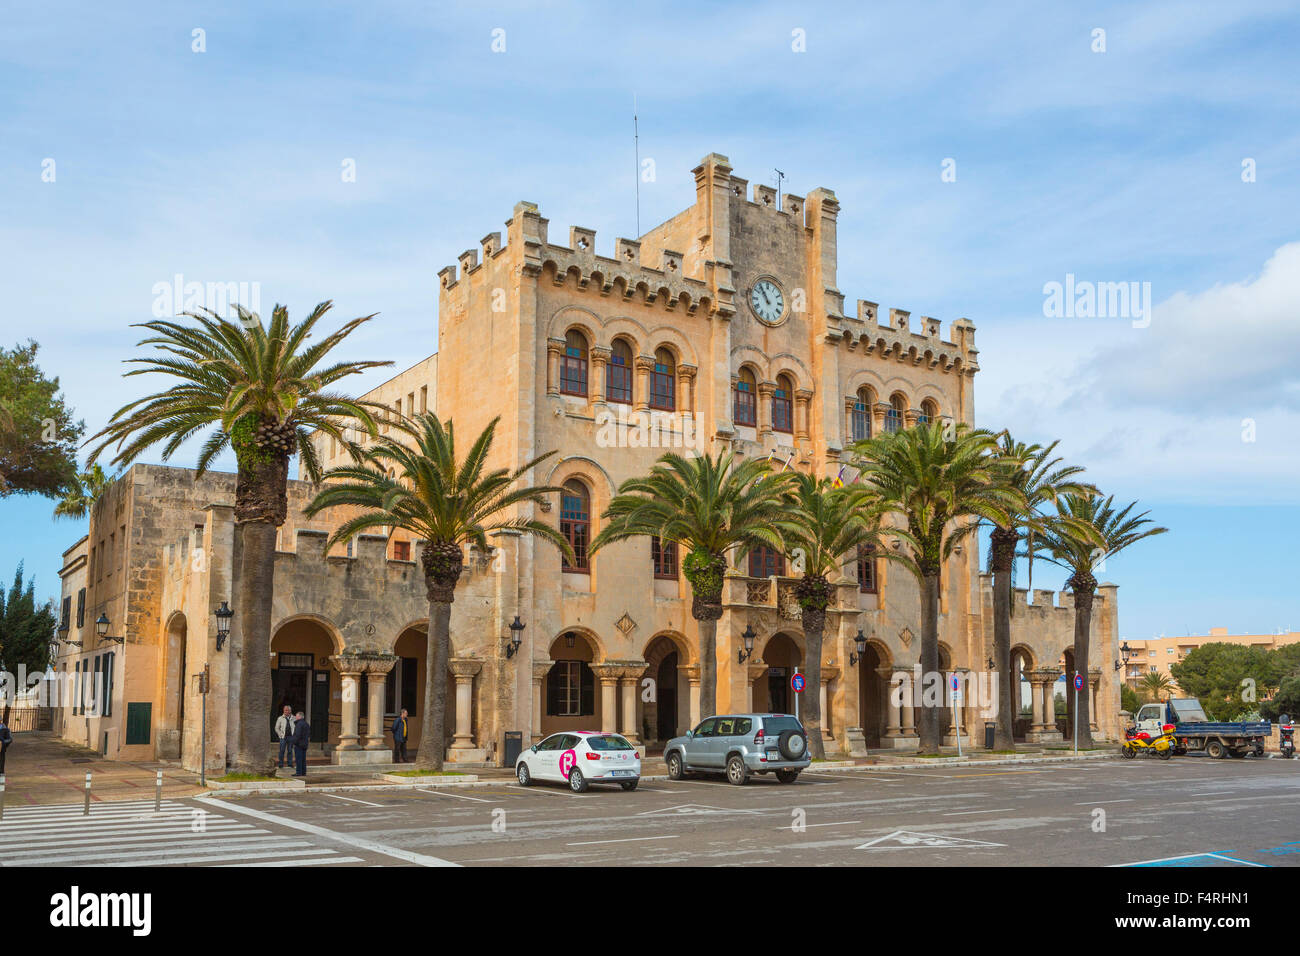 Building, Ciutadella, Port, City Hall, Menorca, Balearics, Spring, architecture, Mediterranean, no people, palm - Stock Image